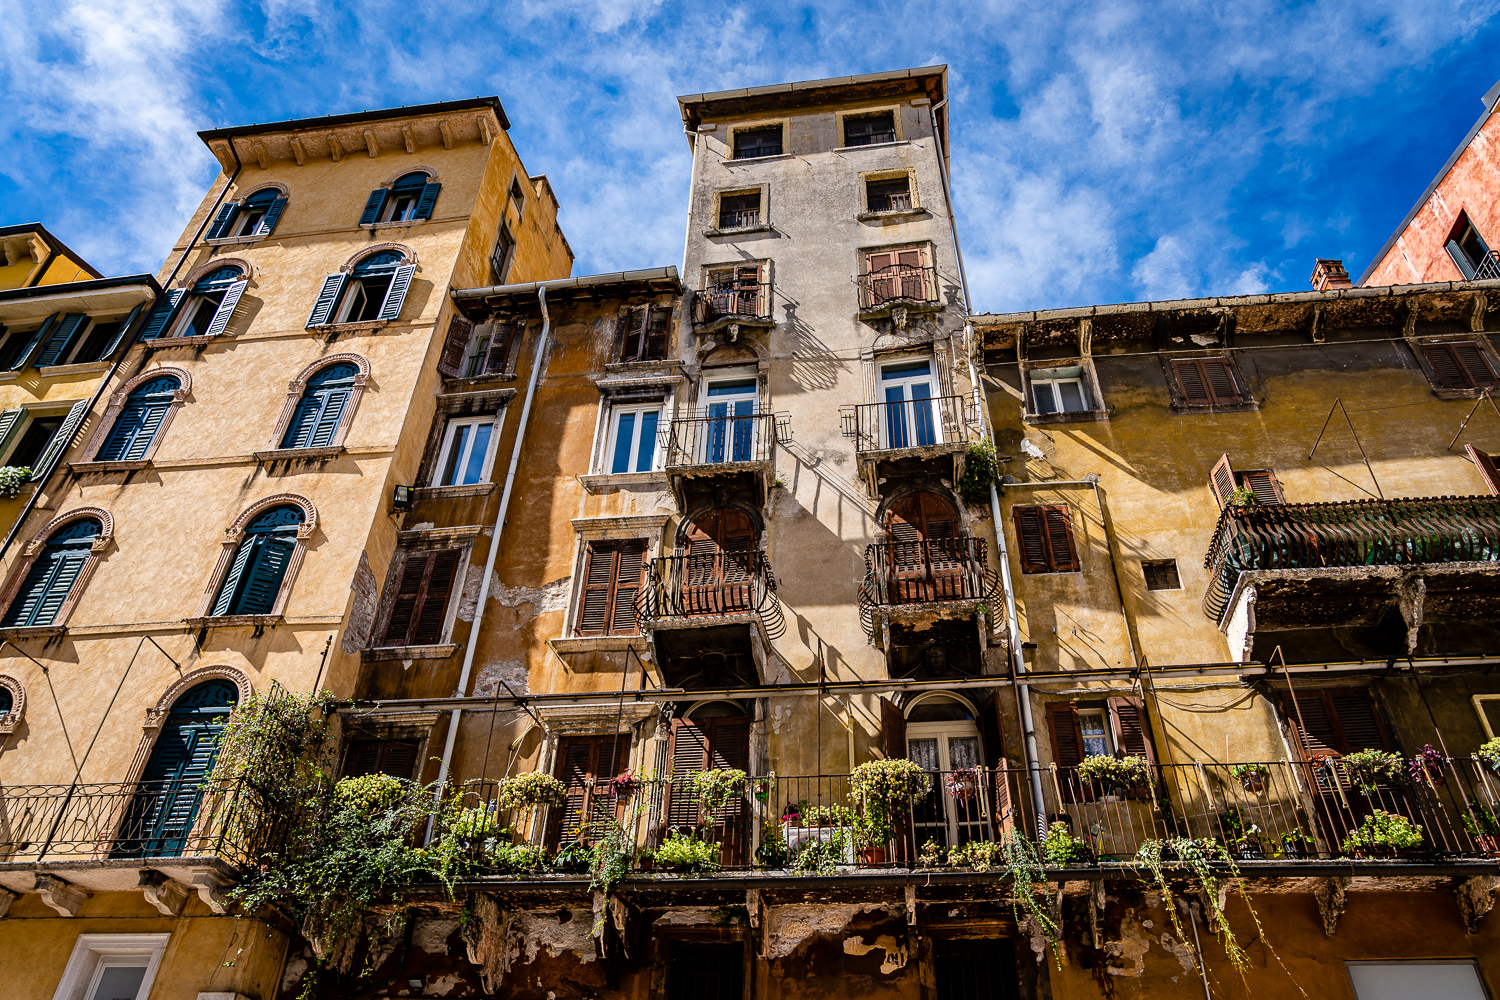 Italian Homes vs American Homes Balconies and Porches